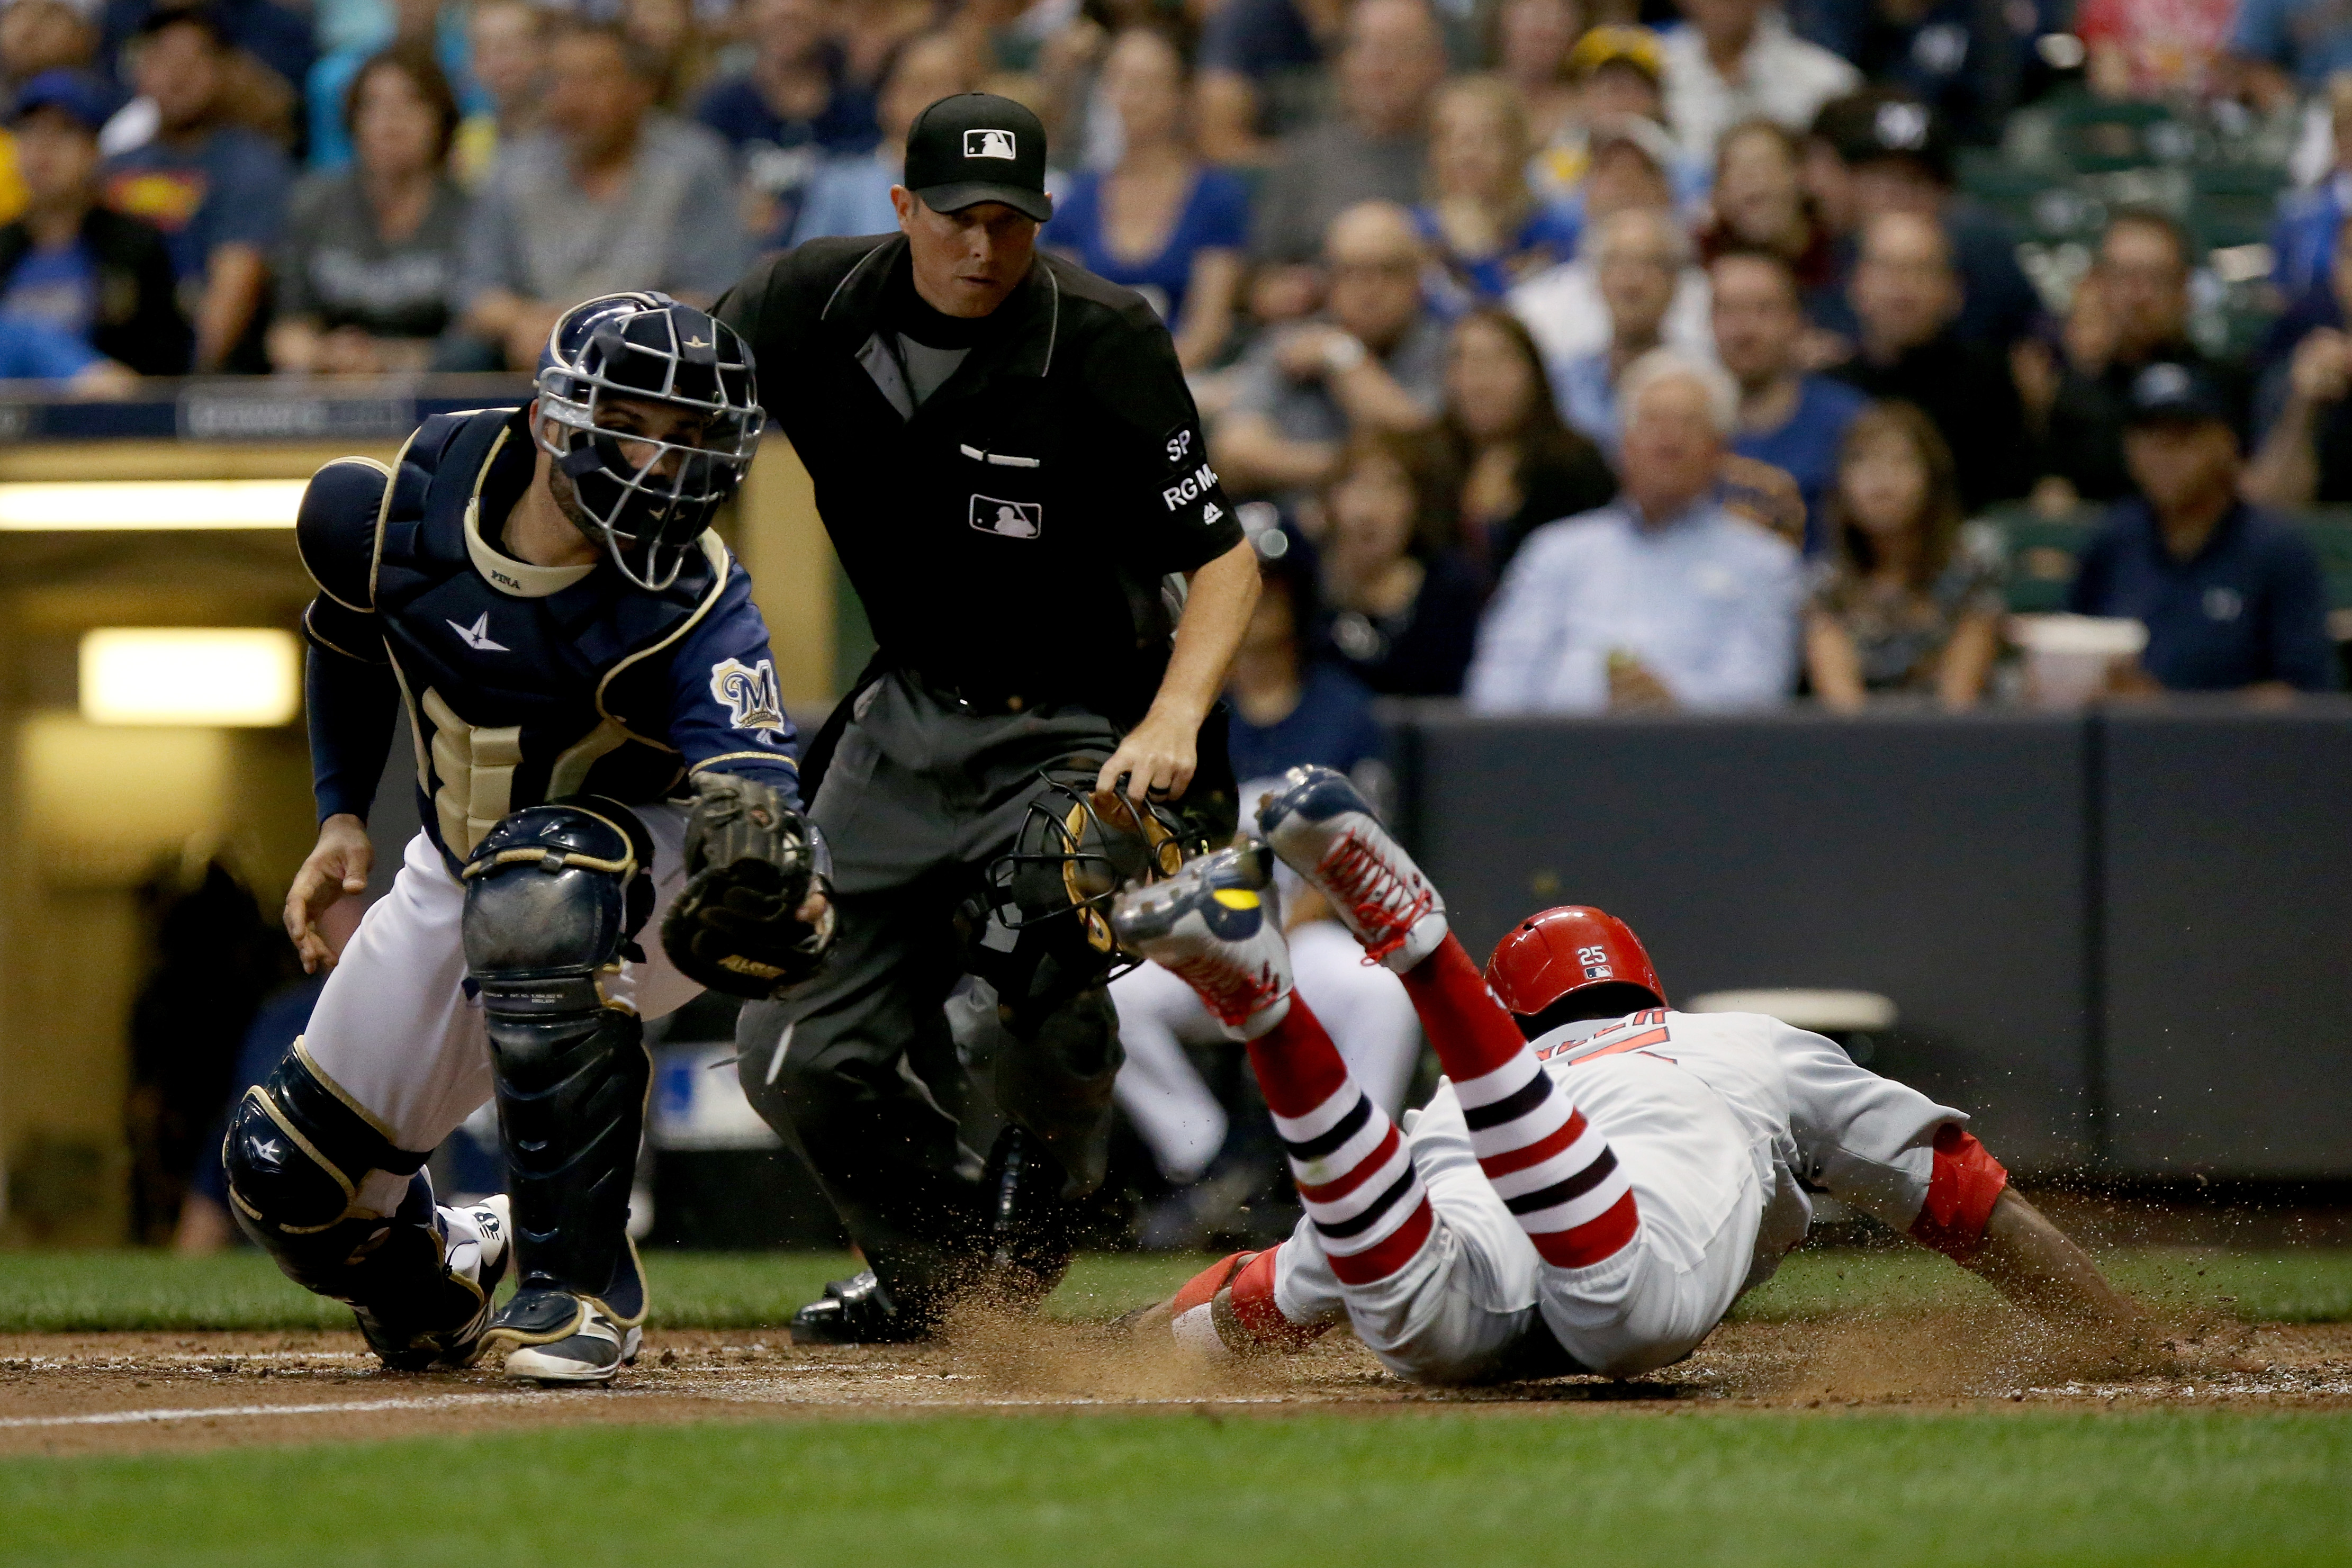 Keon Broxton robs home run, saves game for Brewers